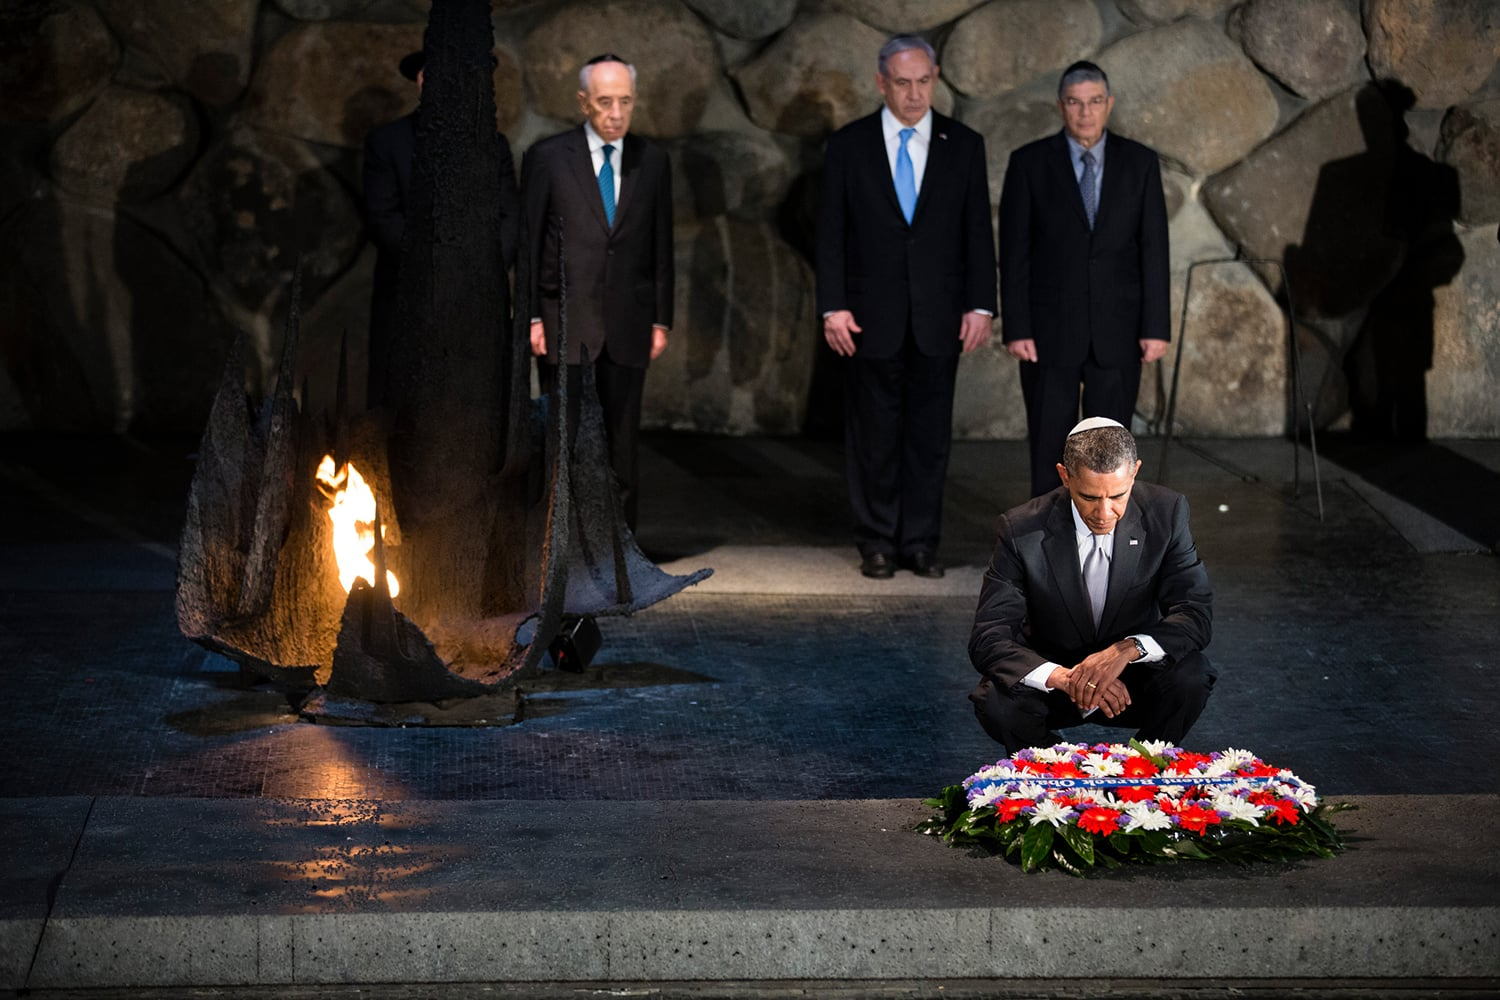 President Barack Obama pauses after adjusting a wreath placed in the Hall of Remembrance during his visit to the Yad Vashem Holocaust Museum in Jerusalem, March 22, 2013. Standing behind the President, from left, are: Rabbi Yisrael Meir Lau; Israeli President Shimon Peres; Israeli Prime Minster Benjamin Netanyahu; and Avner Shalev, Chairman of the Yad Vashem Directorate. (Official White House Photo by Chuck Kennedy).